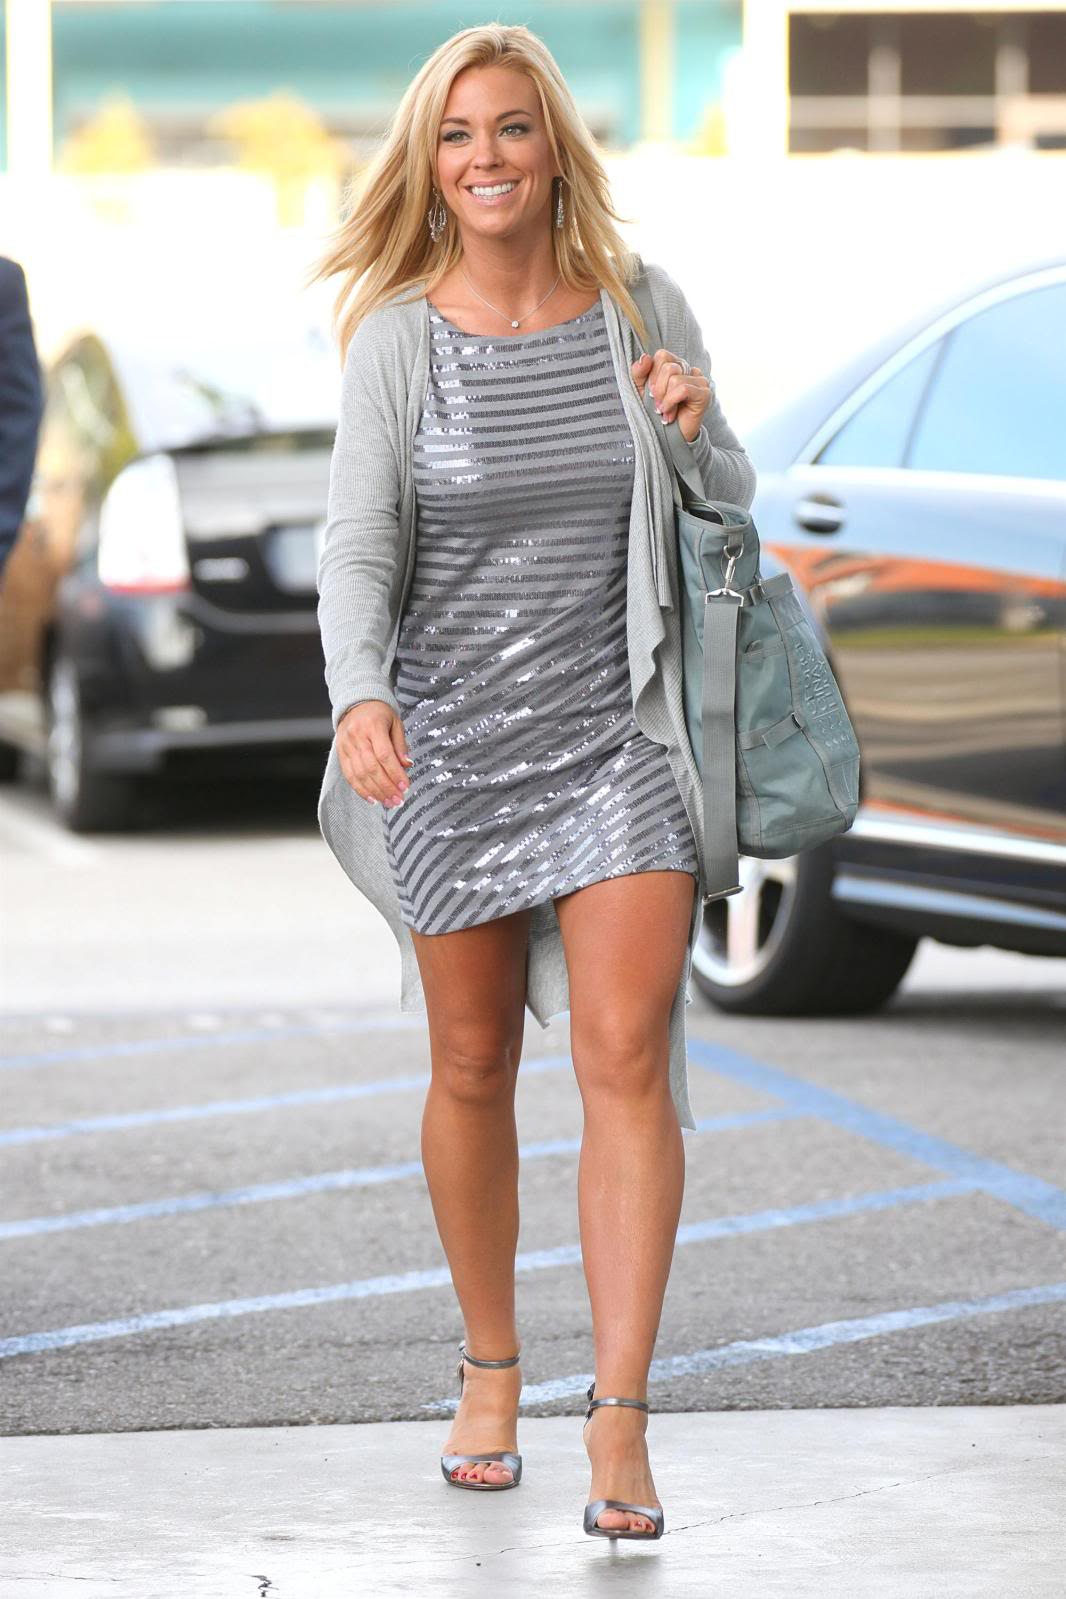 Iphone X Full Wallpaper Size Kate Gosselin Street Style Full Hd Pictures